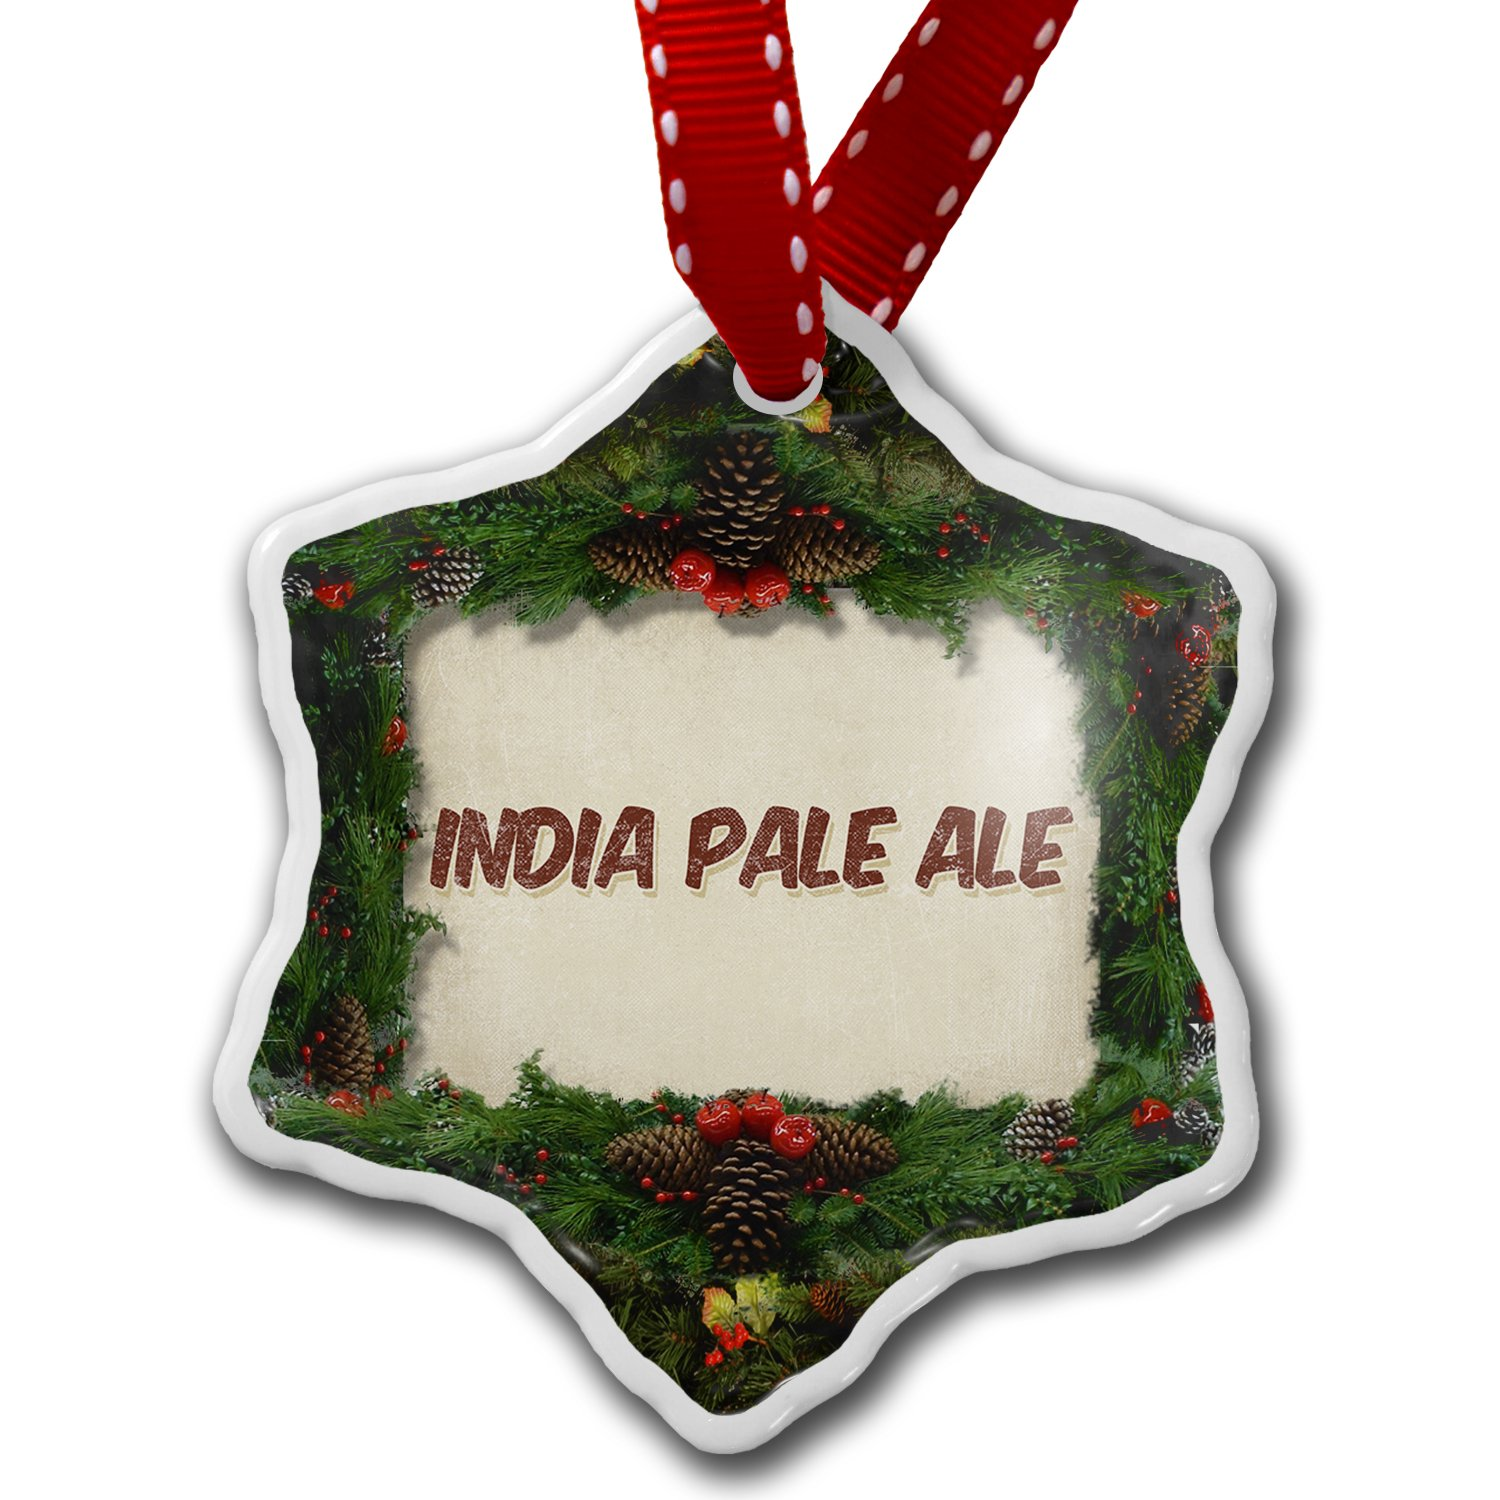 Amazon.com: NEONBLOND Christmas Ornament India Pale Ale Beer ...